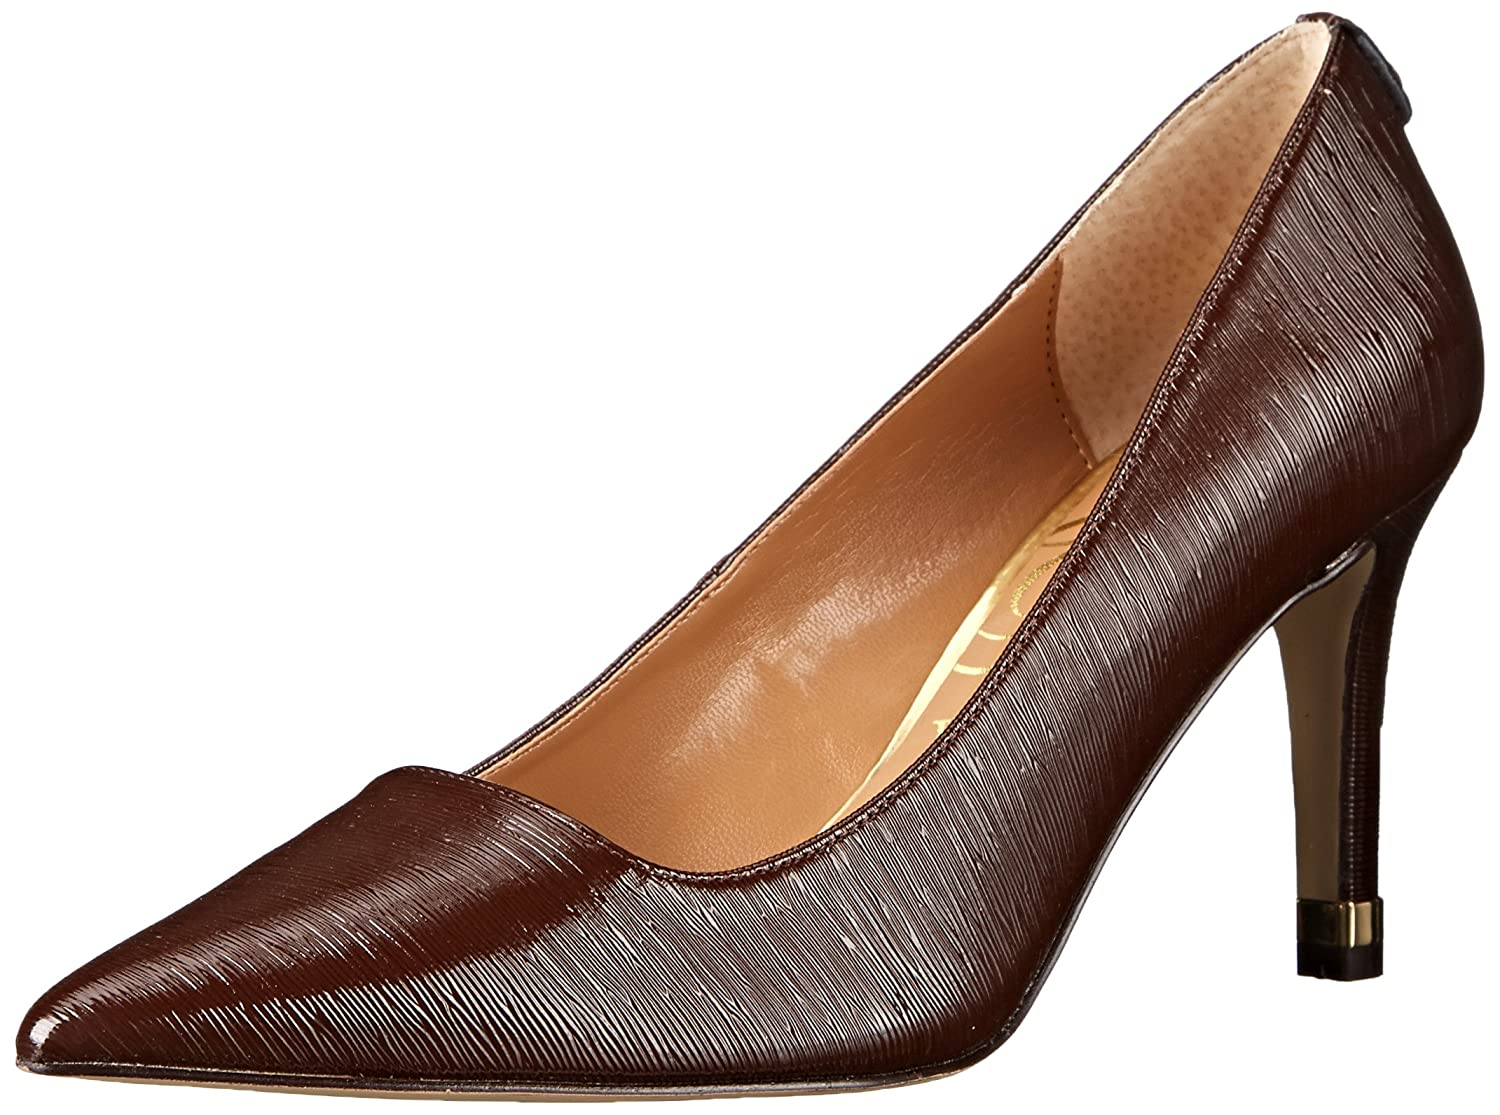 J.Renee Women's Sascha Dress Pump B010AAIYWA 9.5 W US|Chestnut